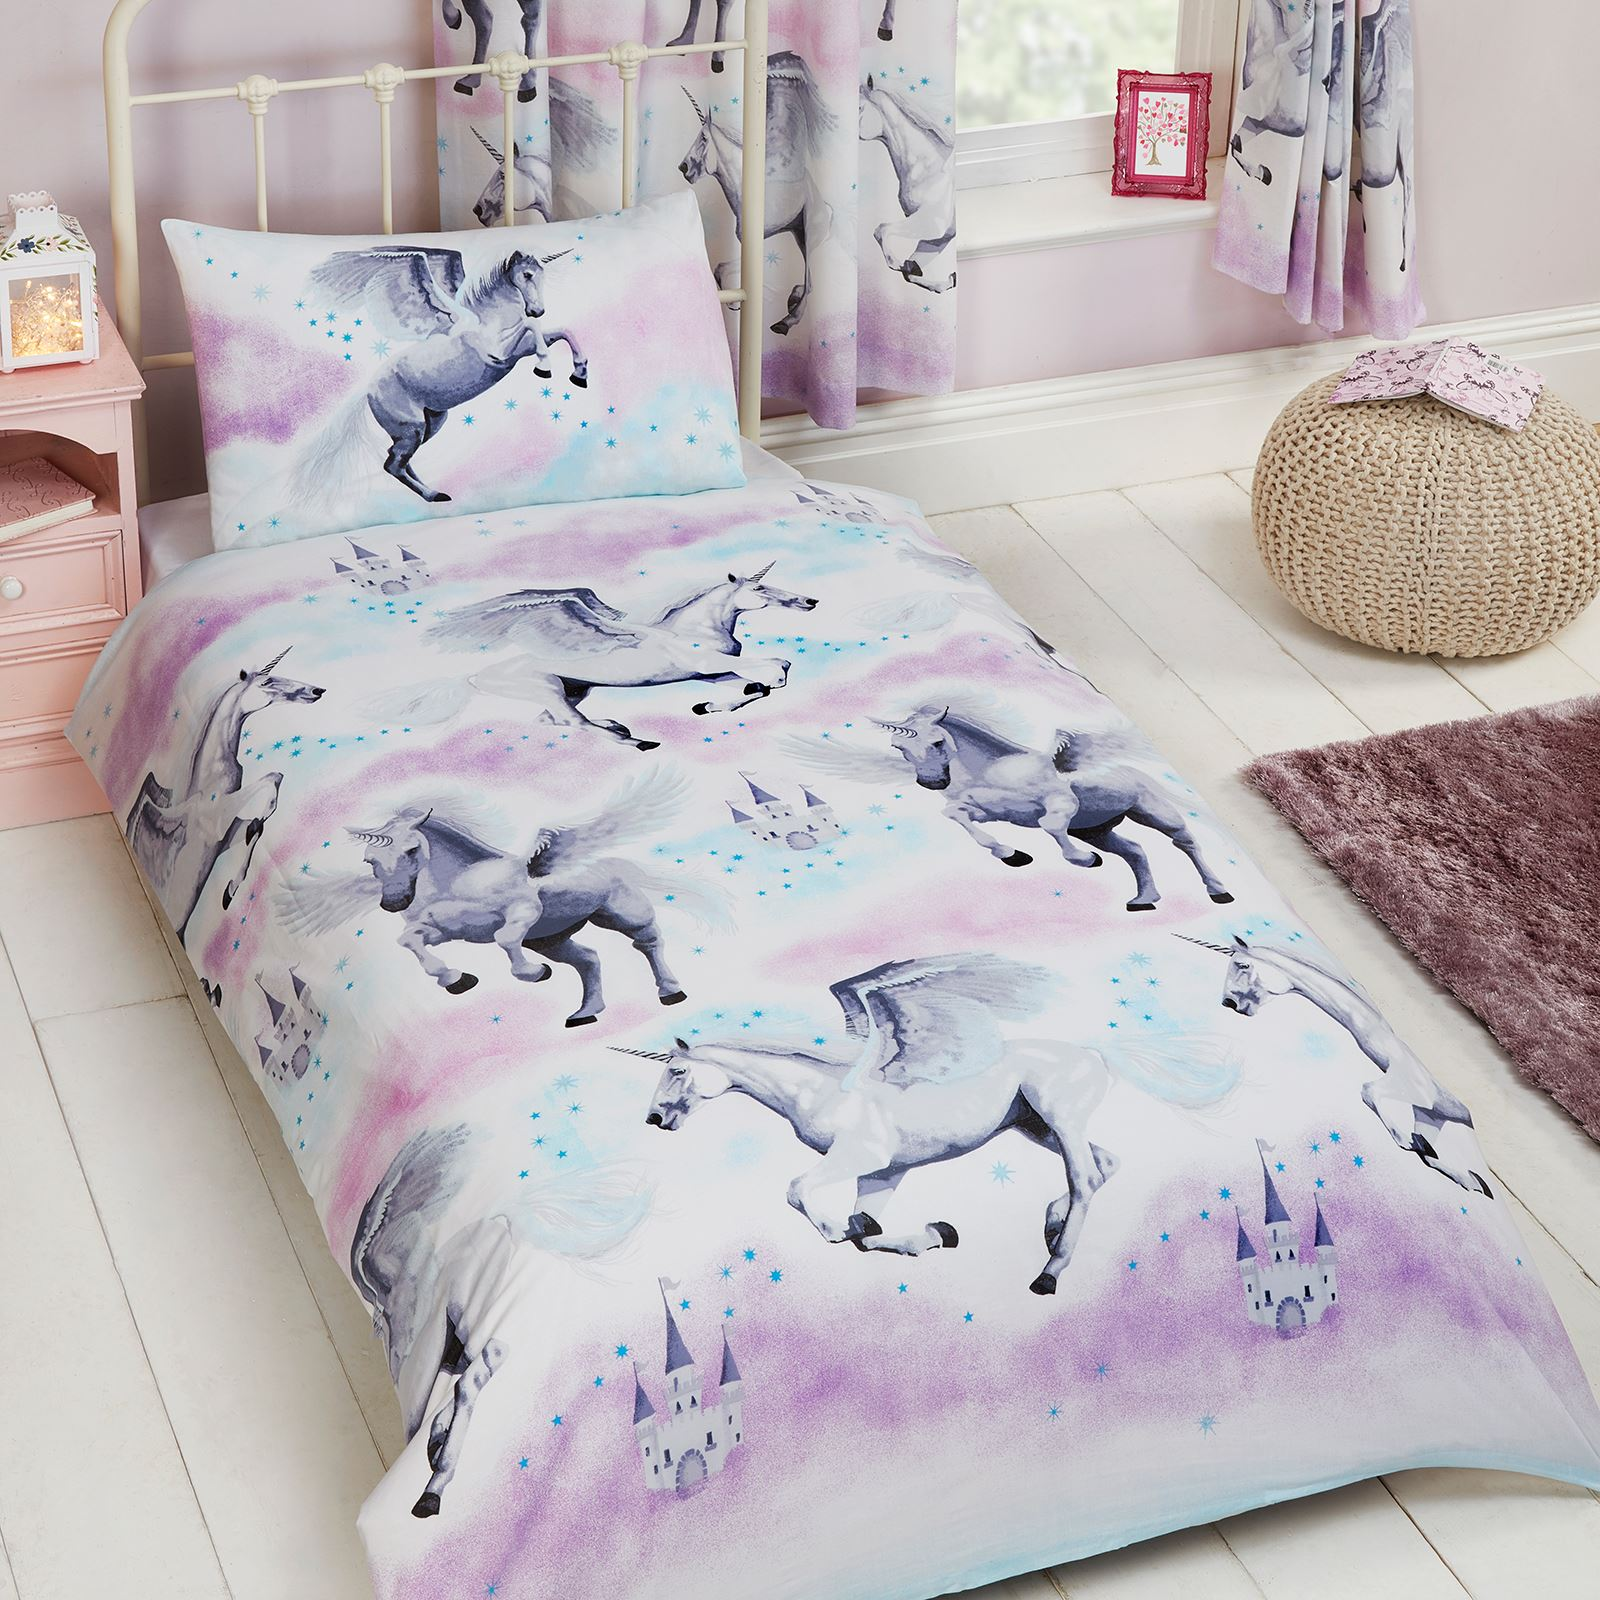 Childrens Bed Sets And Matching Curtains